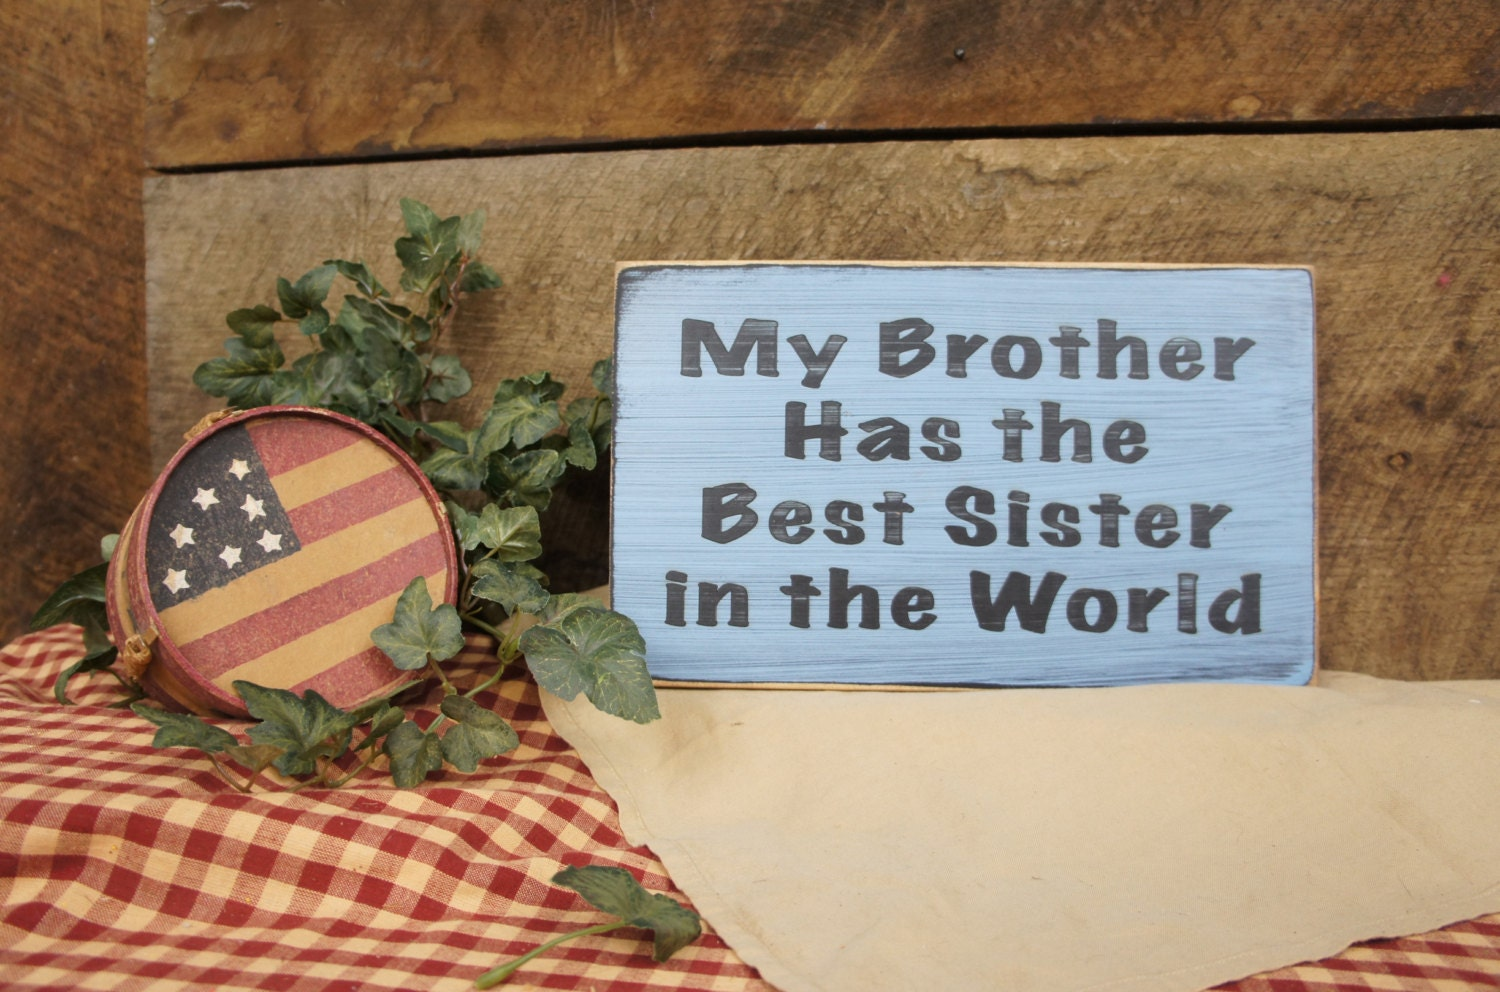 I Have The Best Sister In The World Quotes: My Brother Has The Best Sister In The World Rustic Style Fun